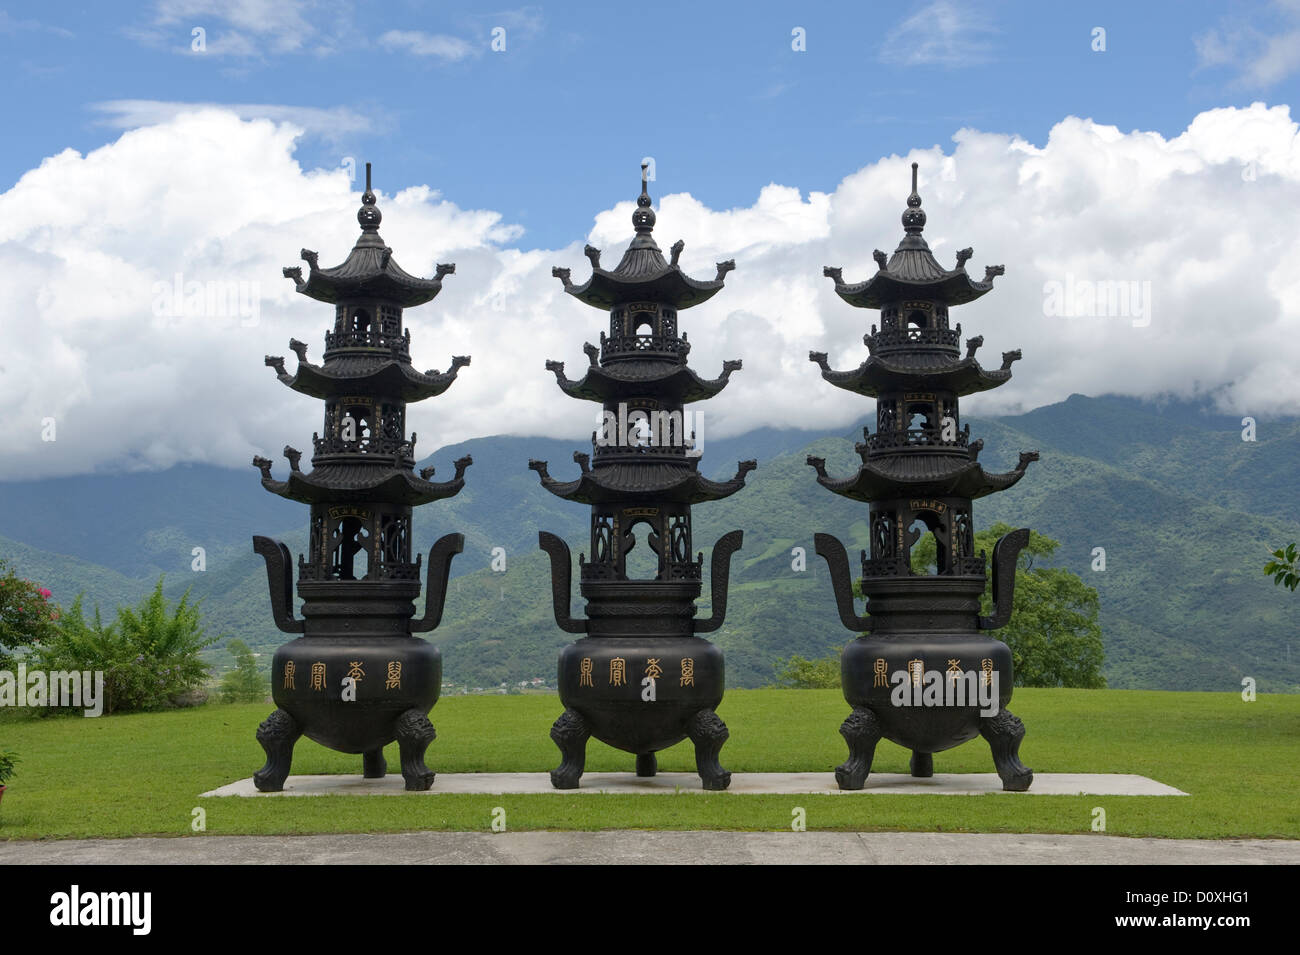 En Asie, Taiwan, temple, Dong Fu Zan, East River Valley, la religion Photo Stock